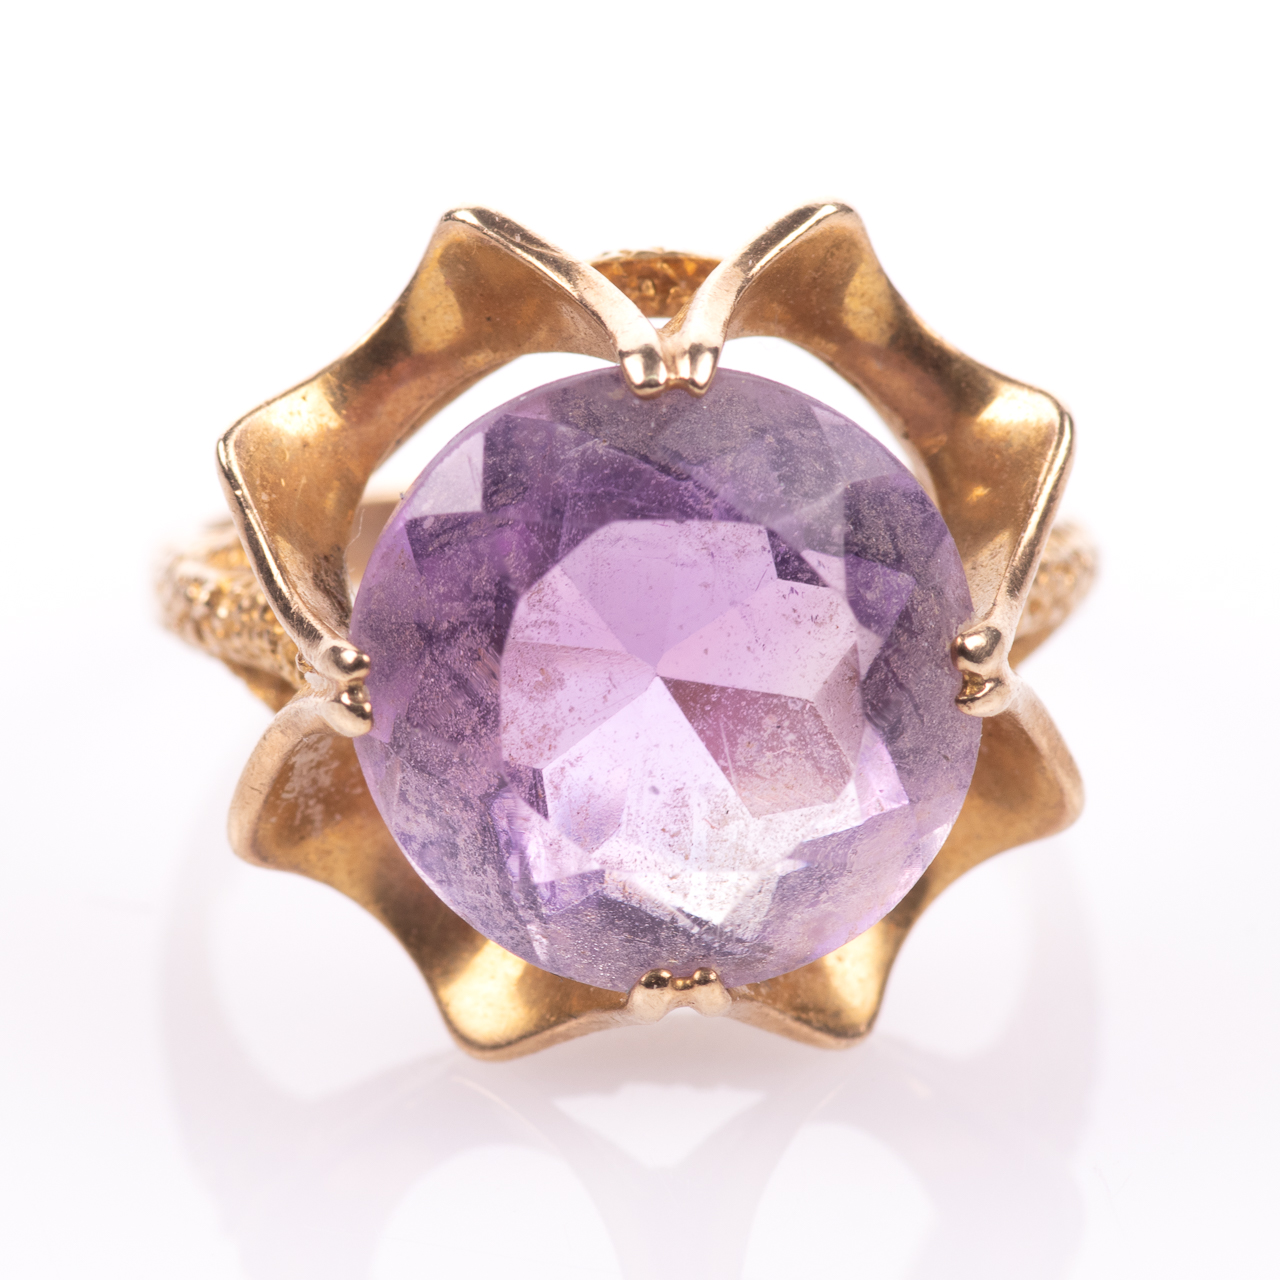 9ct Gold 6.45ct Amethyst Ring London 1974 - Image 3 of 8